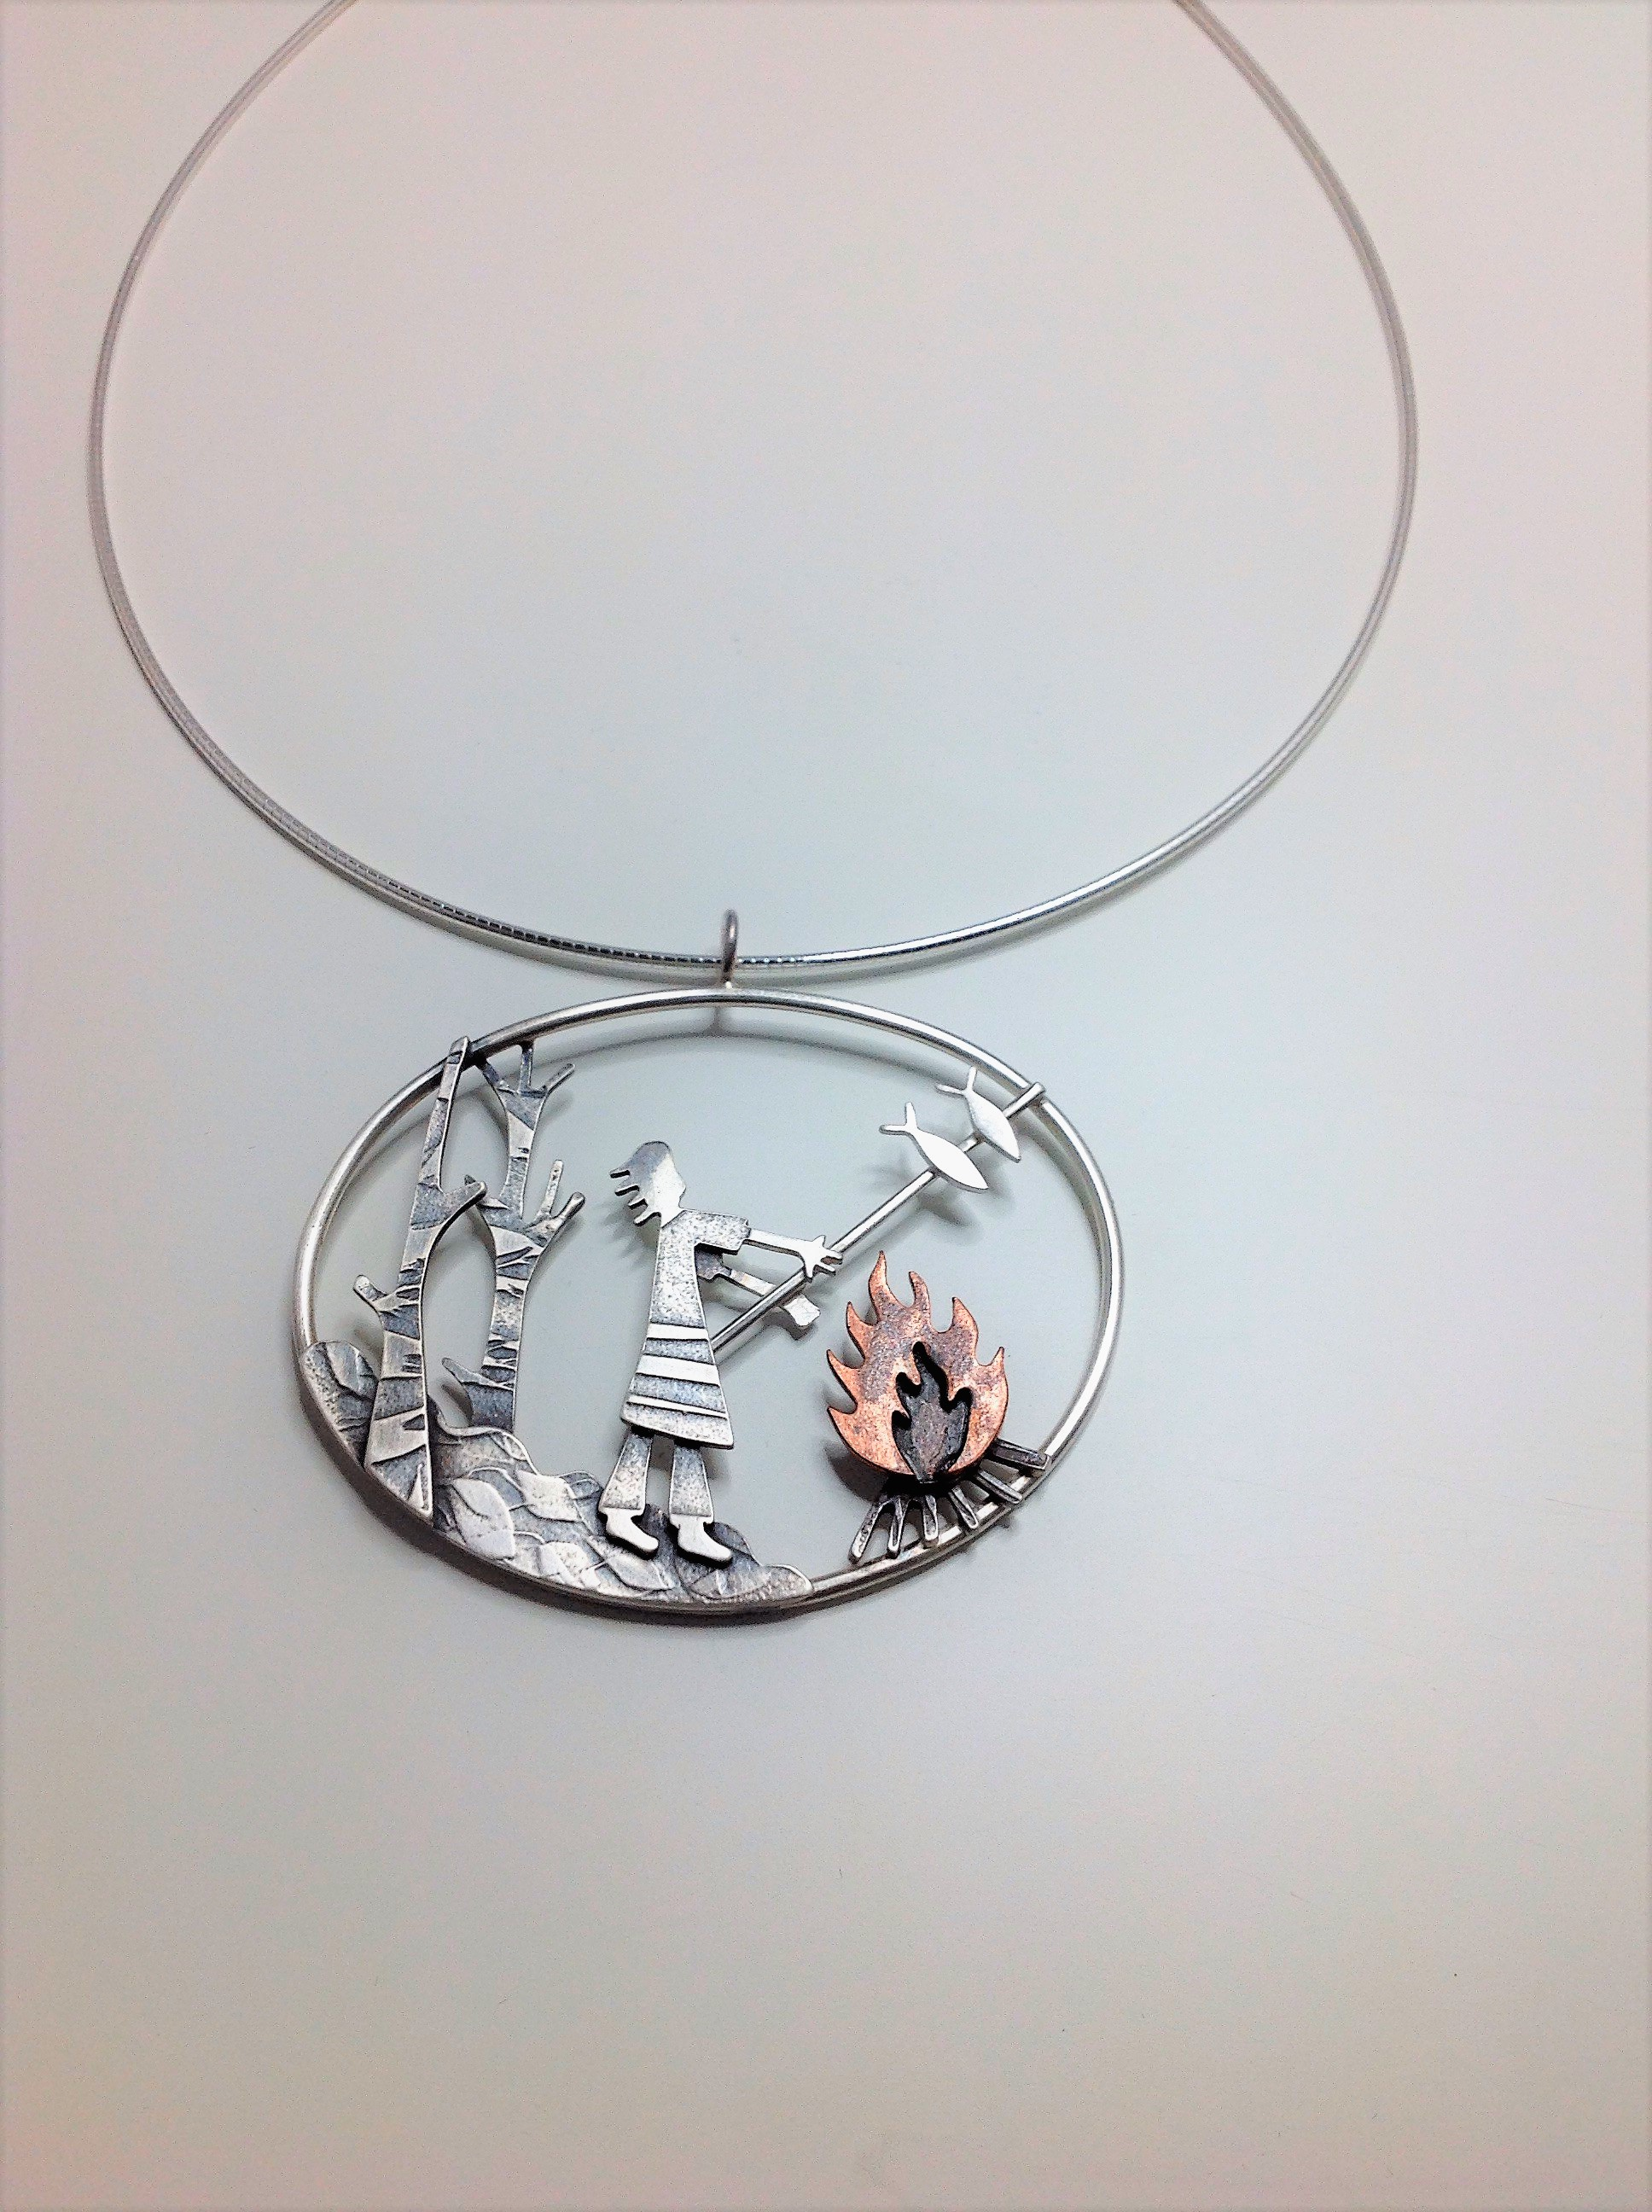 bead silver and fish product silks sri crafted sagunthalai german acrylic hand pendant with twisted necklace